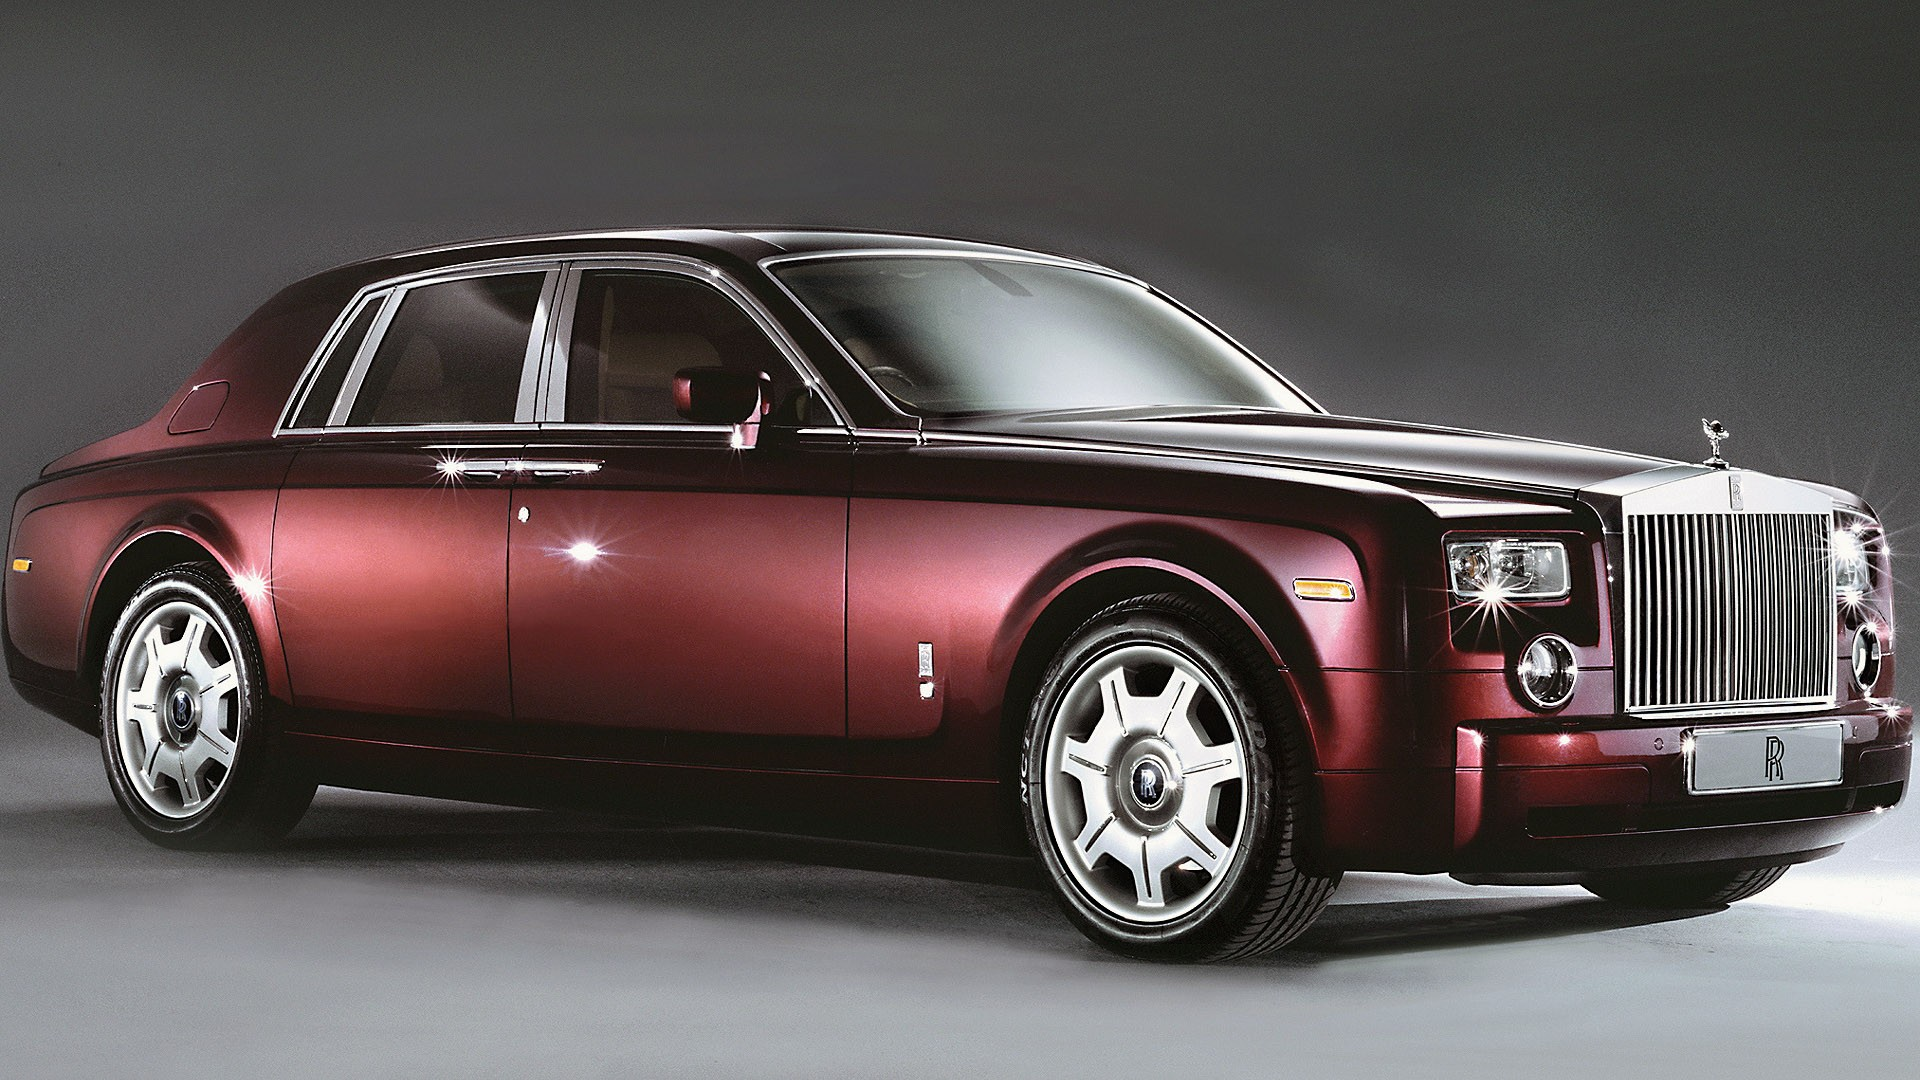 Rolls Royce Wallpapers, Pictures, Images